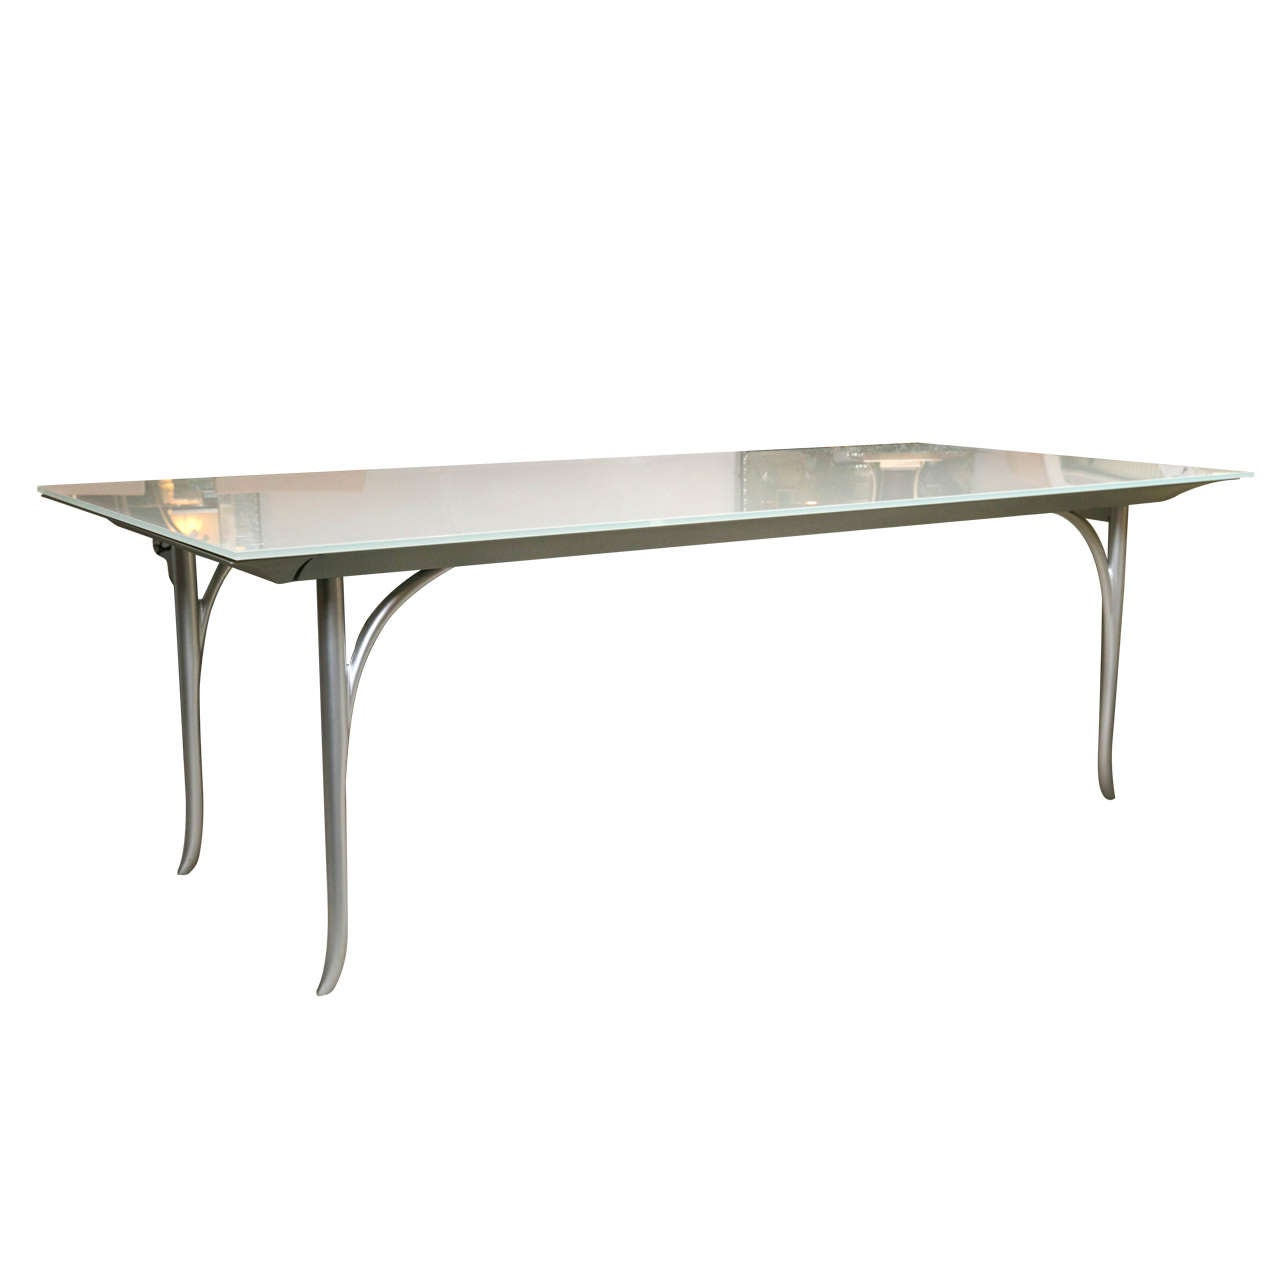 Roche bobois dining table with extendable leave at 1stdibs - Table ovale marbre roche bobois ...